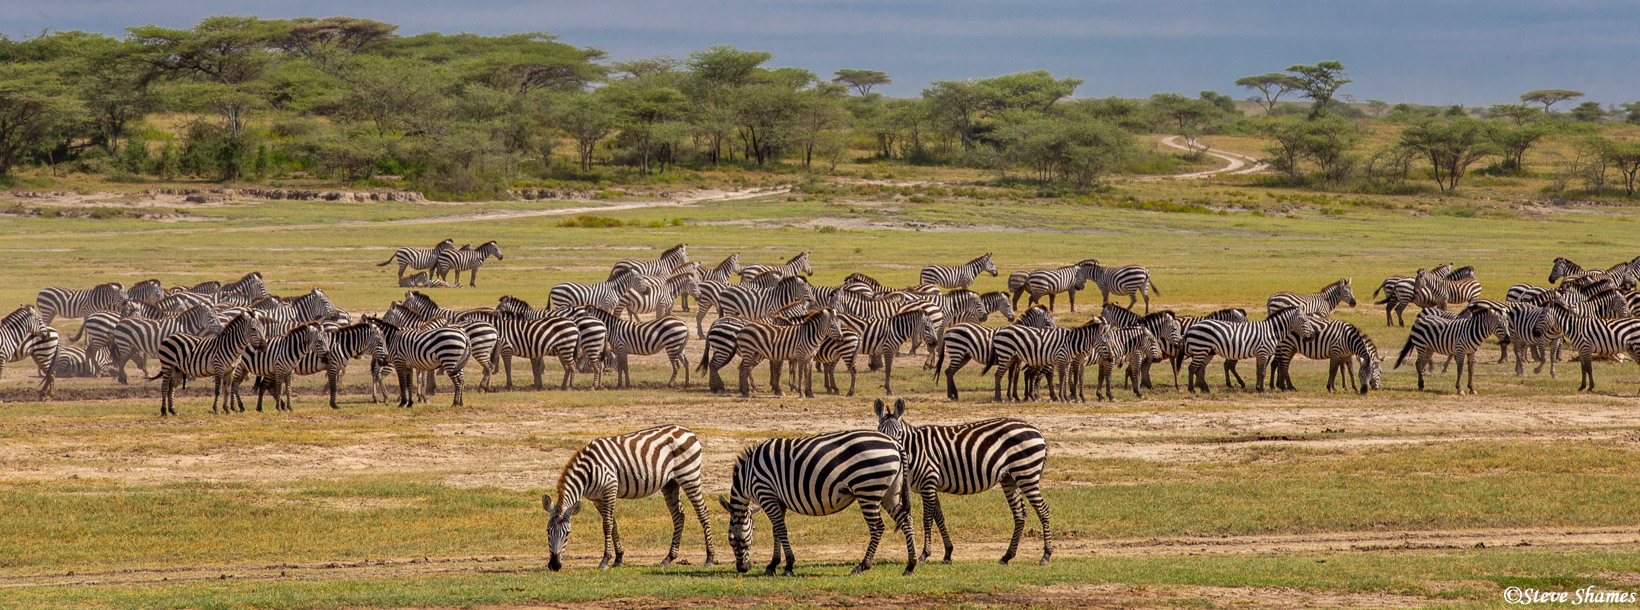 serengeti, national park, tanzania africa, zebra, wildebeest migrate, photo